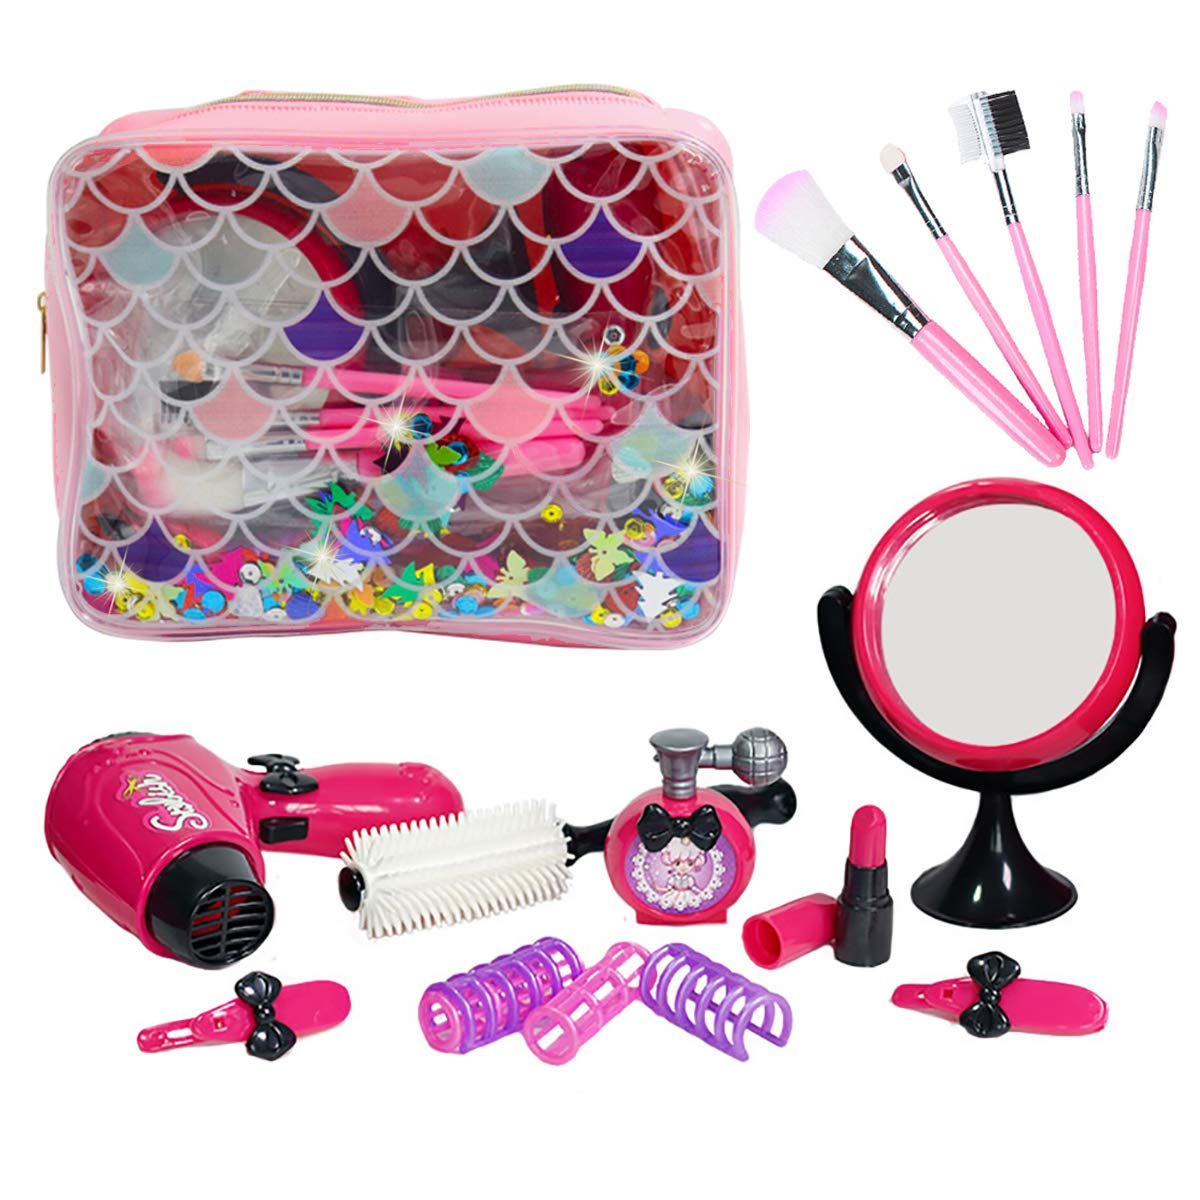 Echolife Girls Pretend Play Makeup Kit Beauty Salon Hair Styling Set with Hair Dryer, Lipsticks, Makeup Brushes Set, Mirror Beauty Accessories for Girl 3-7 Year Old